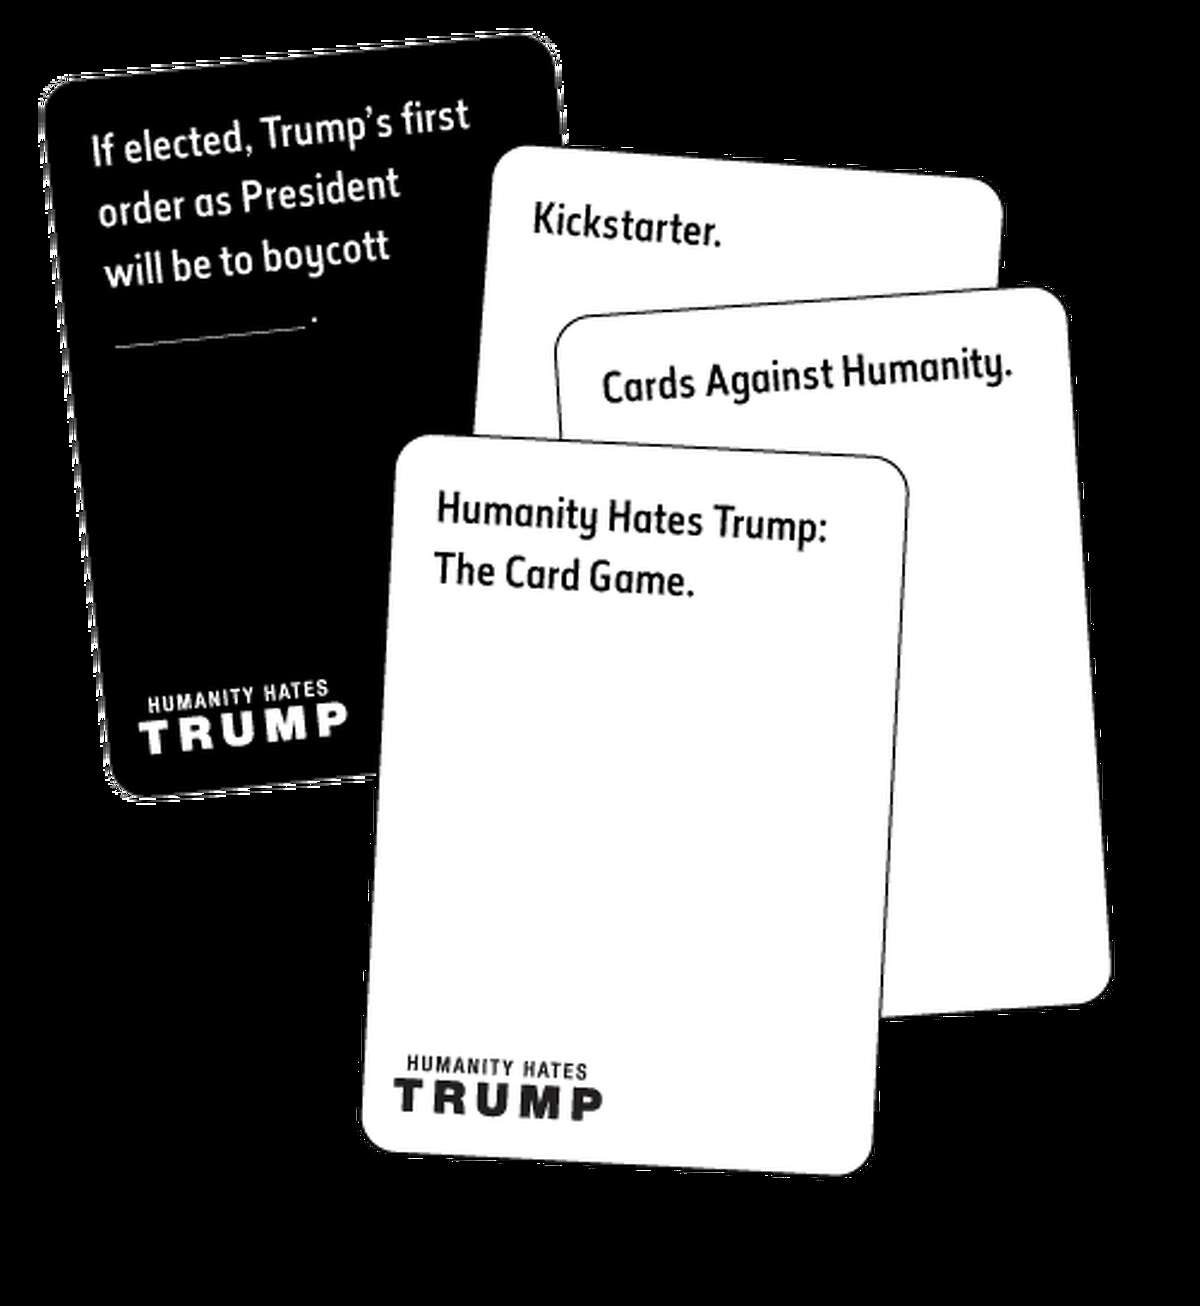 Humanity Hates Trump is back in the news Wednesday - this time to declare a new Kickstarter website.